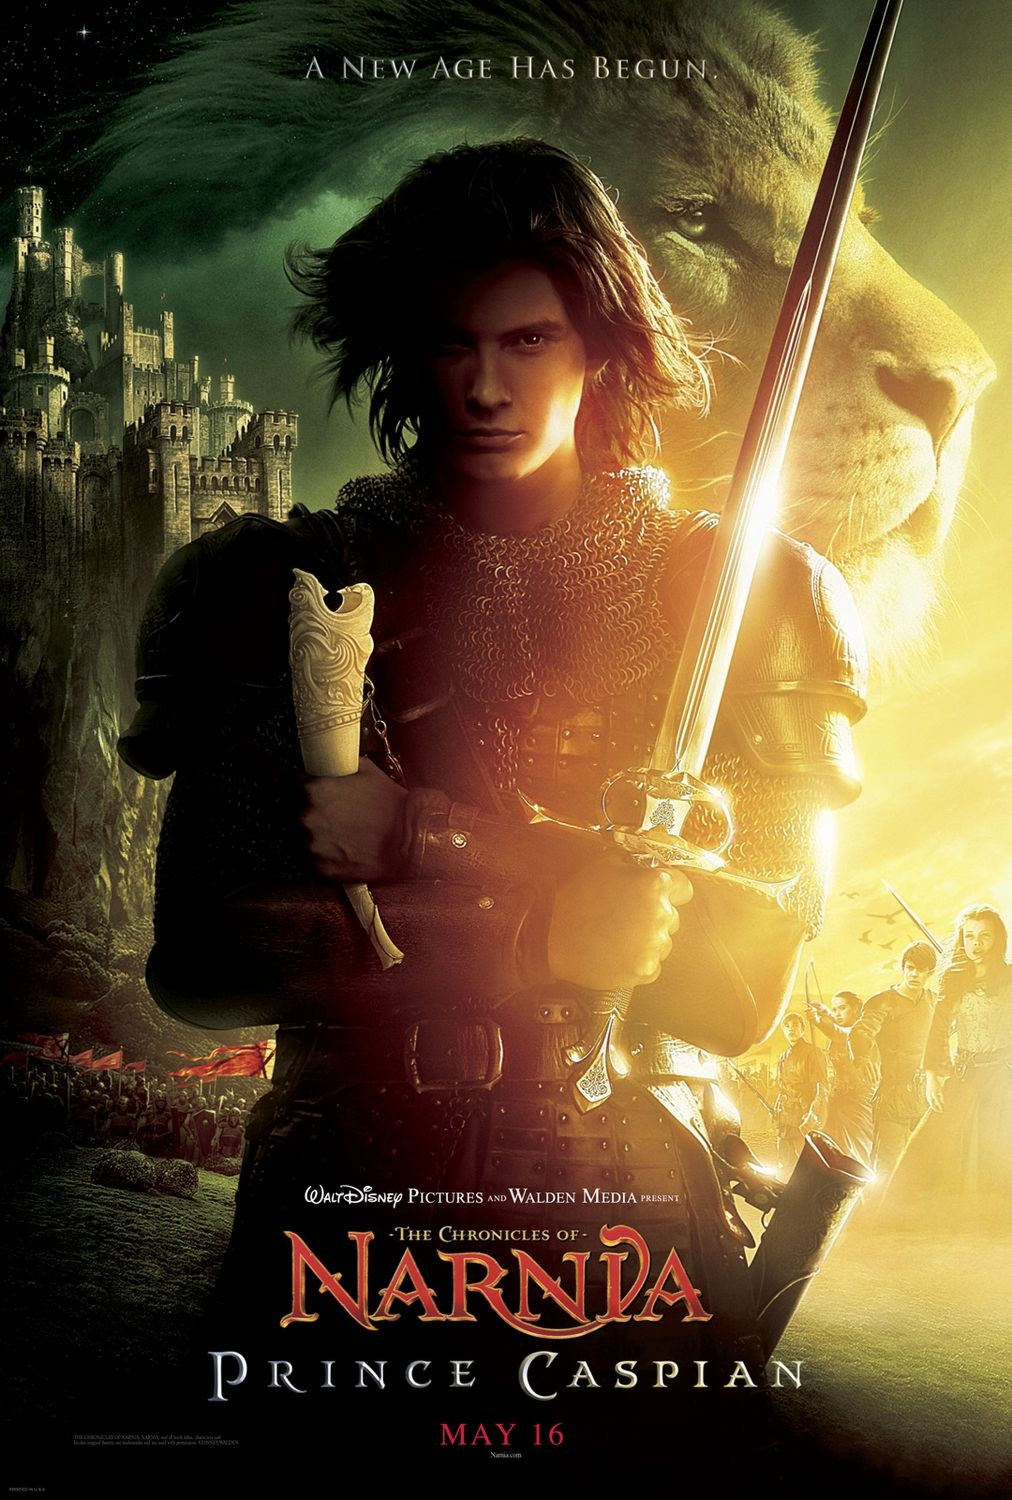 THE       CHRONICLES OF NARNIA: PRINCE CASPIAN - PREVIEW